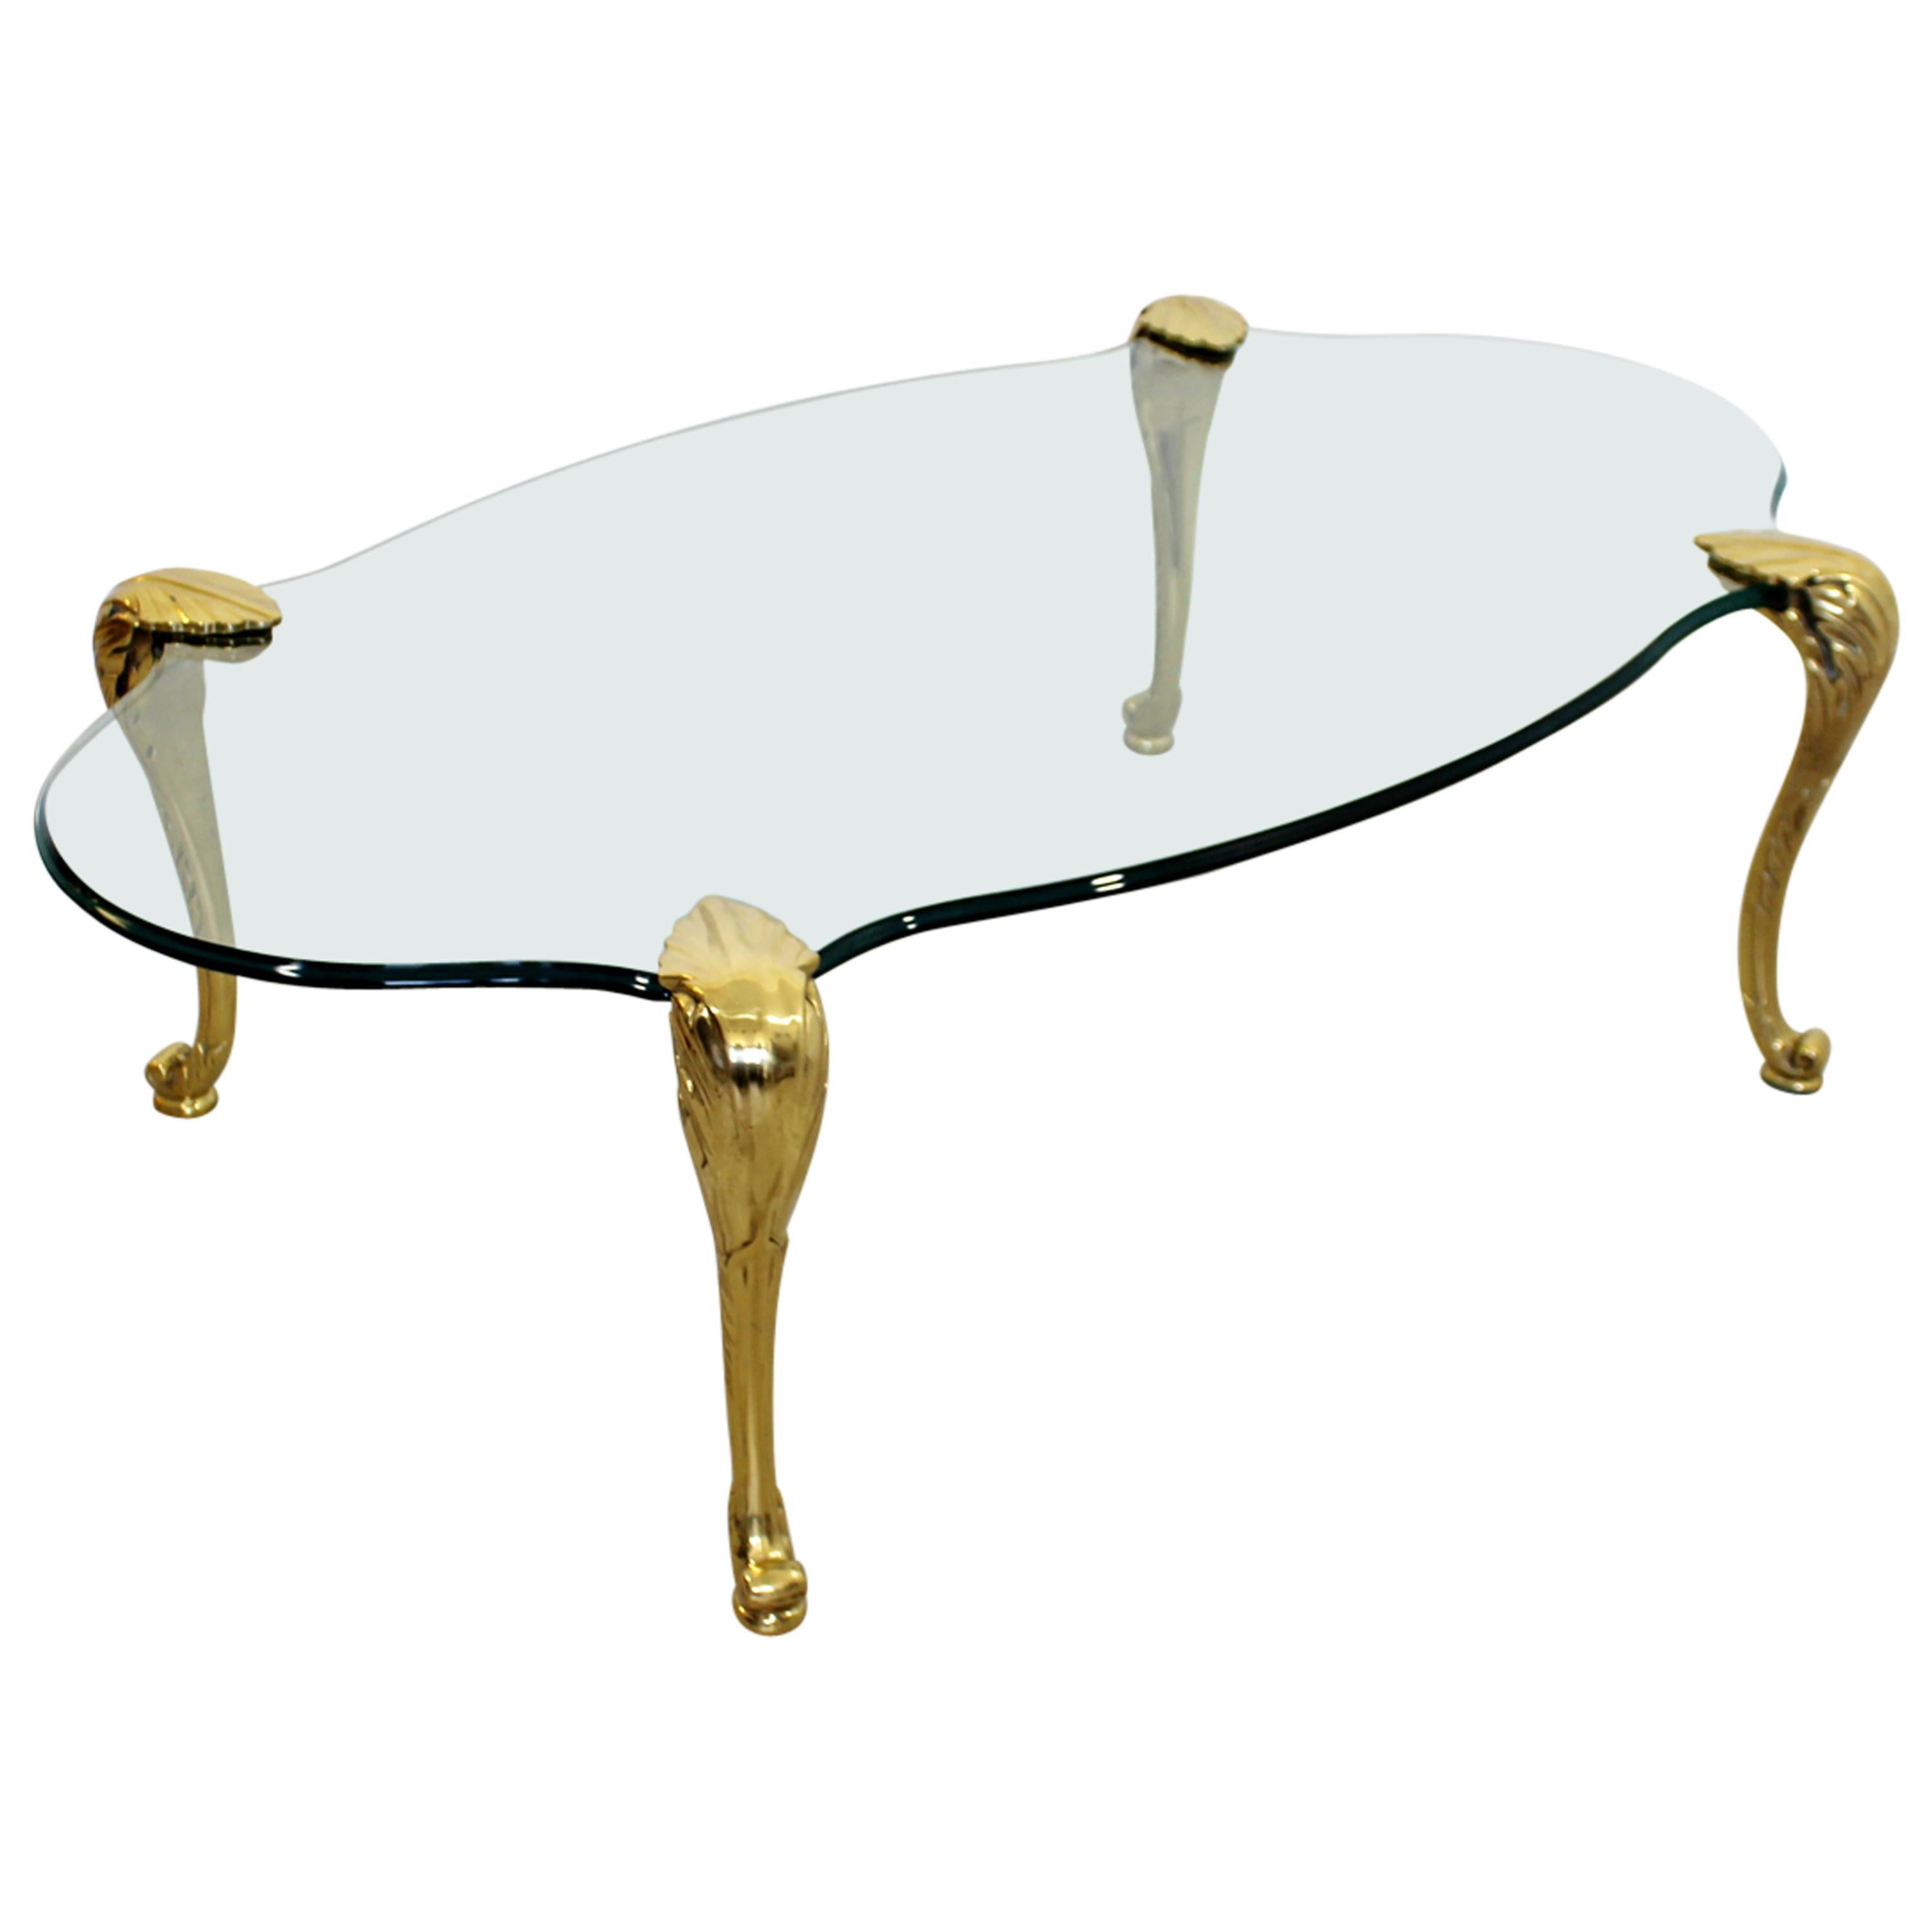 Mid-Century Modern P.E. Guerin Attr. Brass and Glass Sculpted Coffee Table 1950s